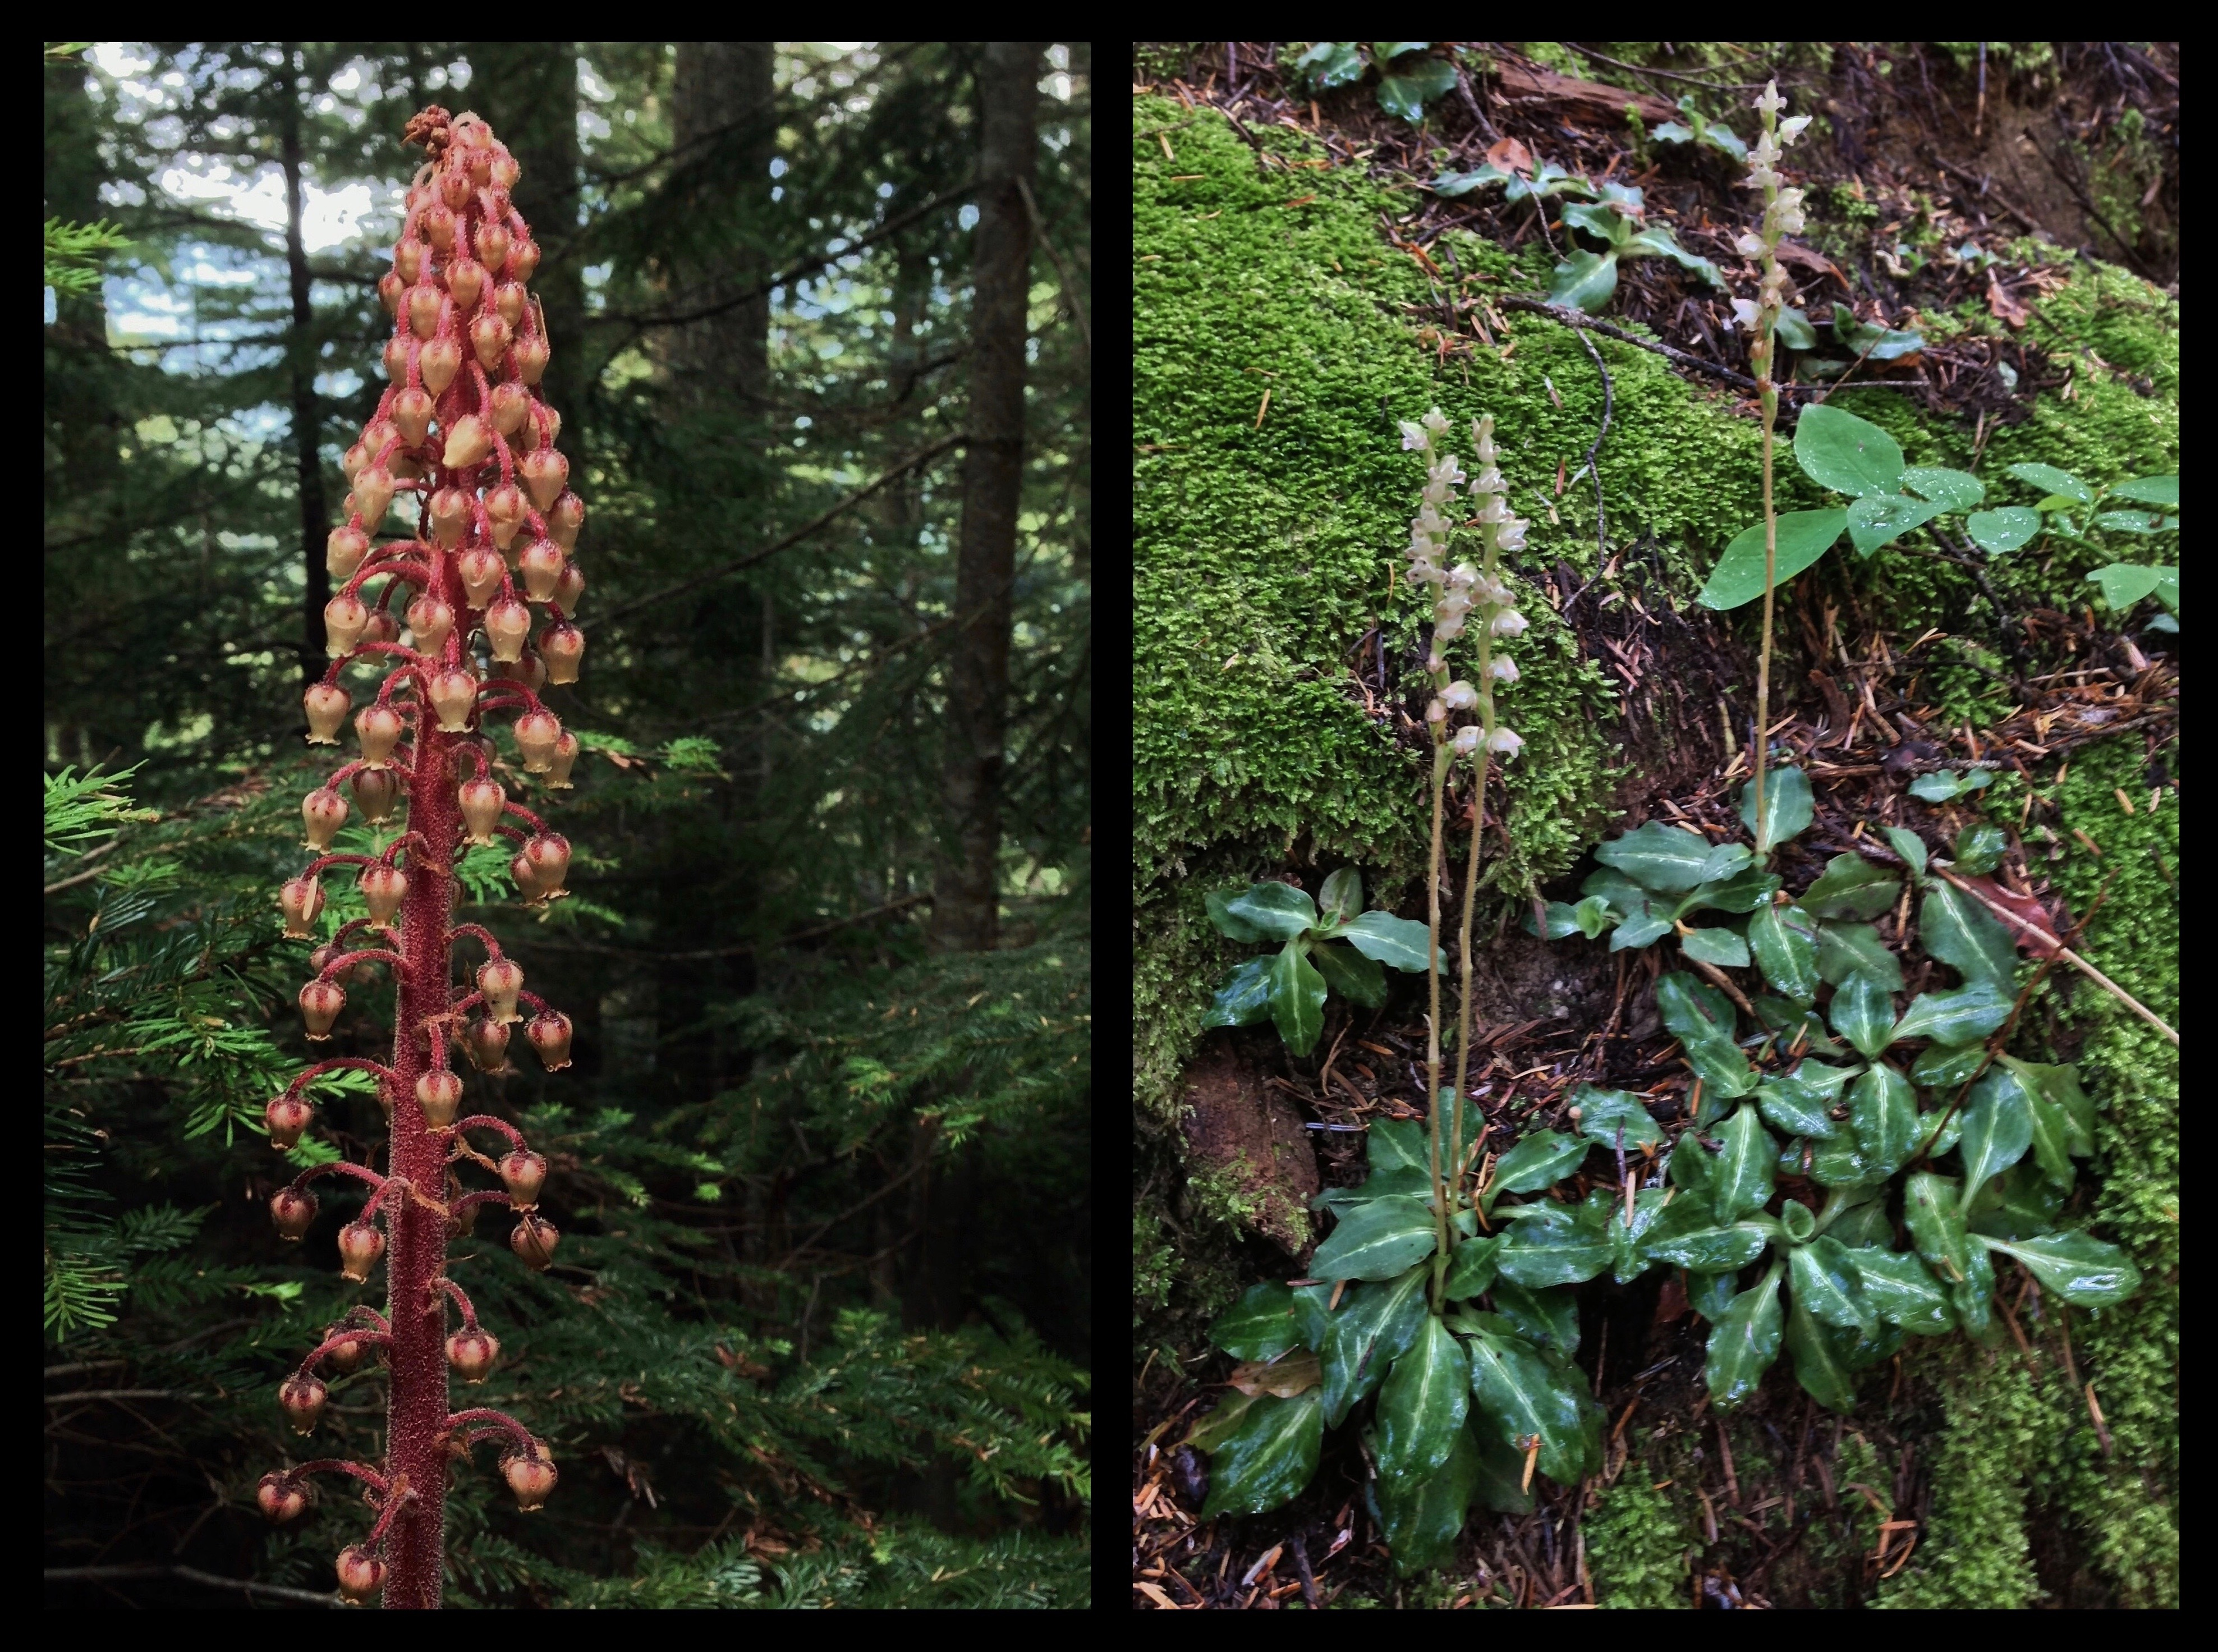 In the woodland wayside, keep an eye out for unusual wildflower species. Named for their glistening, sticky flowers that resemble drops of pitch from the conifers under which they grow, pinedrops (Pterospora andromedea) (left), possess little chlorophyll and live unseen off of fungi in the soil until they sporadically sprout leafless flower stalks above their subterranean homes. The rattlesnake orchid (Goodyera oblongifolia) (right) is fancifully named for the reticulated pattern that sometimes marks its leaves. Annette Lake Trail, August 11, 2013.